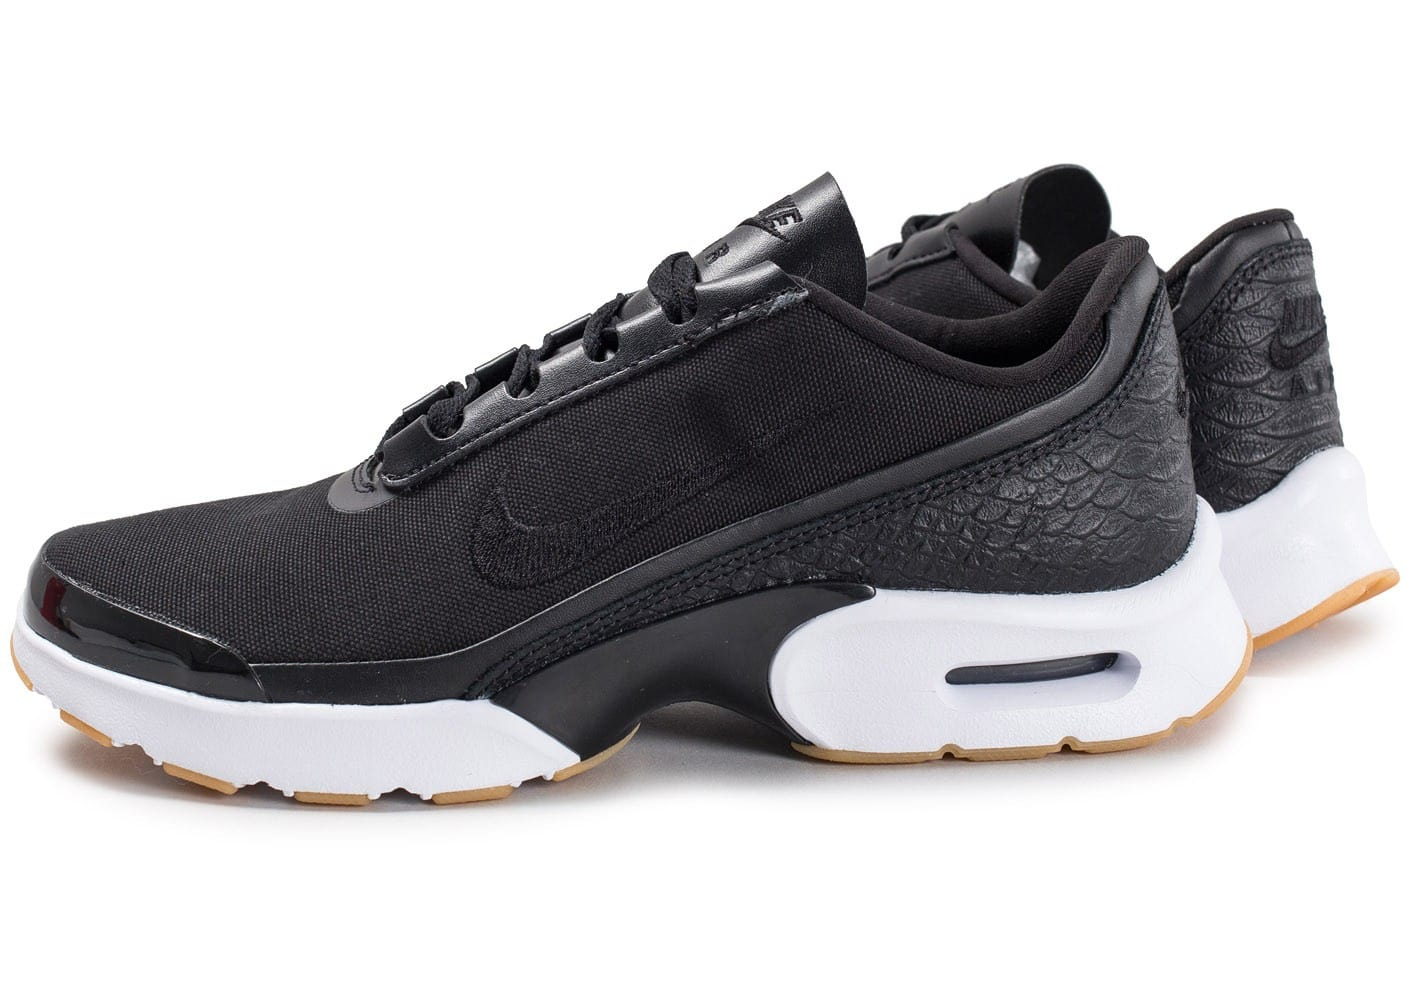 nike air max jewell se noir gum chaussures femme chausport. Black Bedroom Furniture Sets. Home Design Ideas